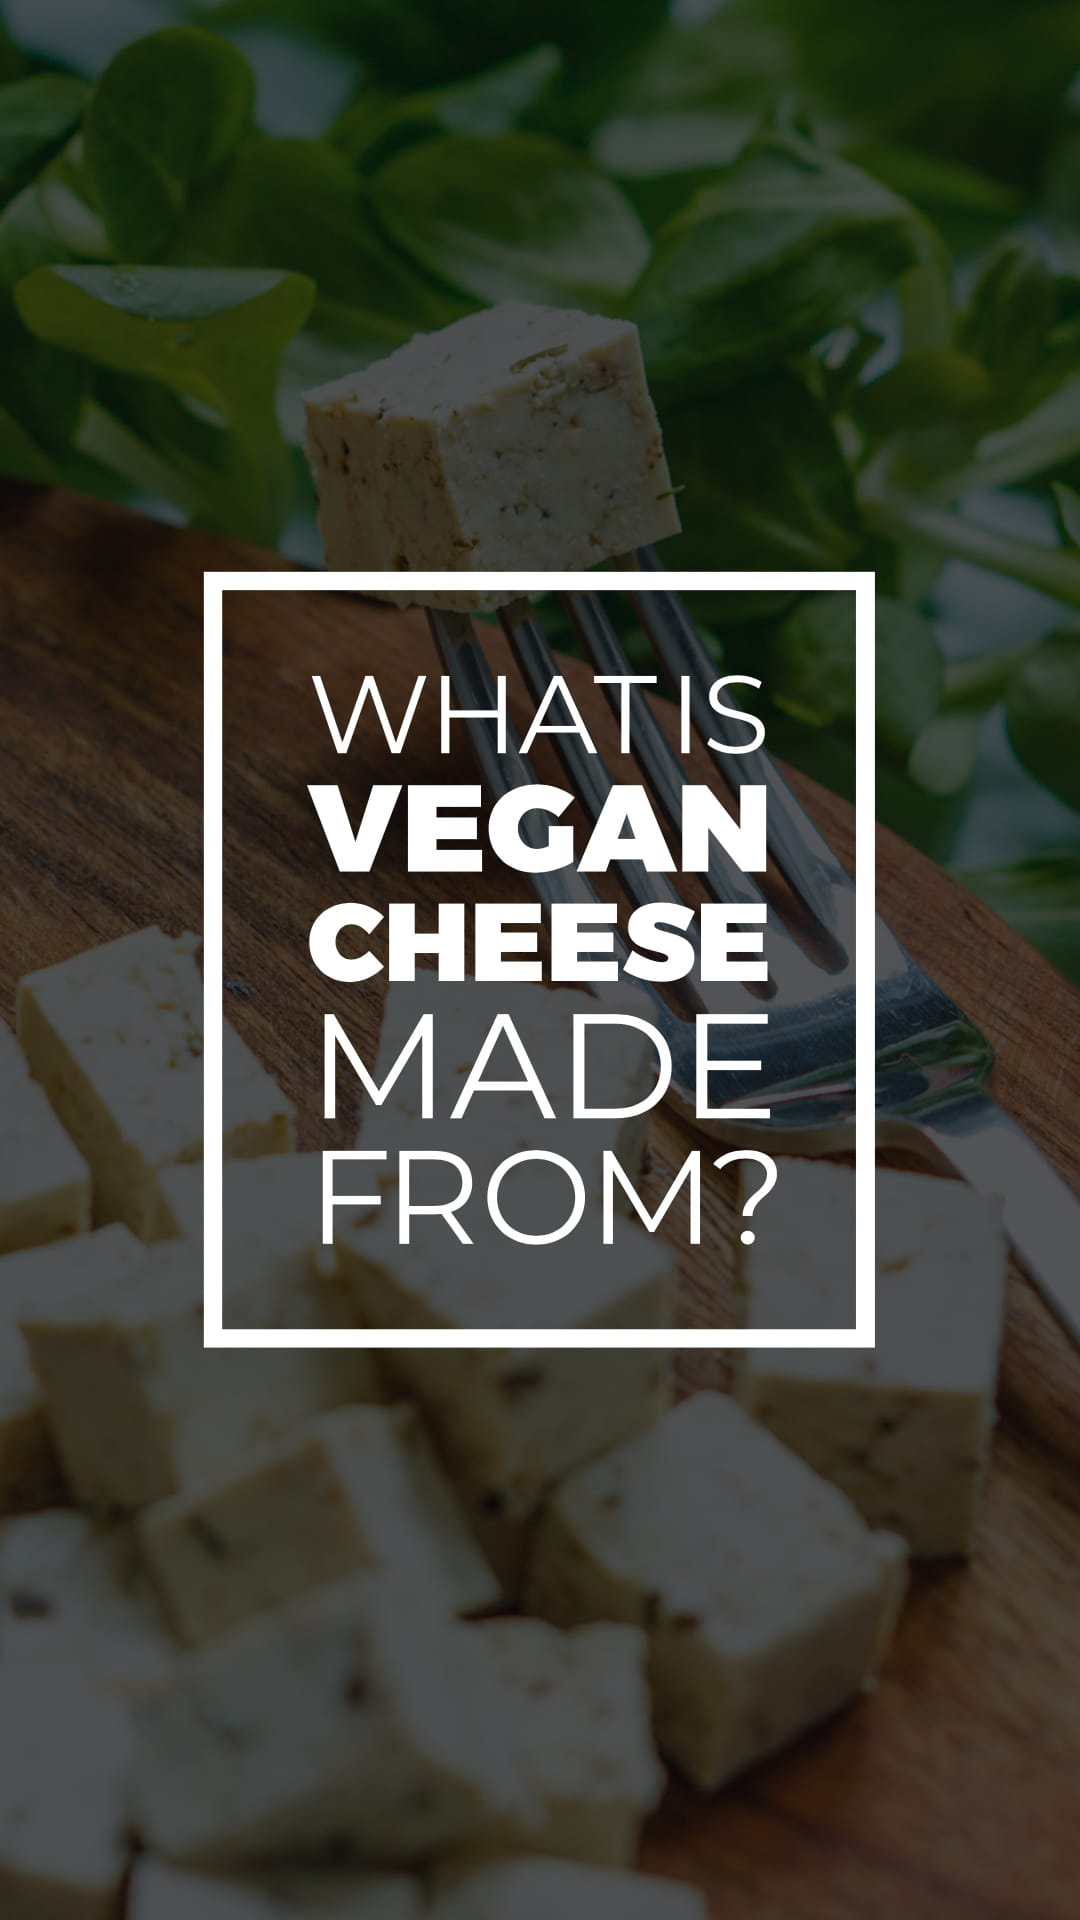 What Is Vegan Cheese Made From?